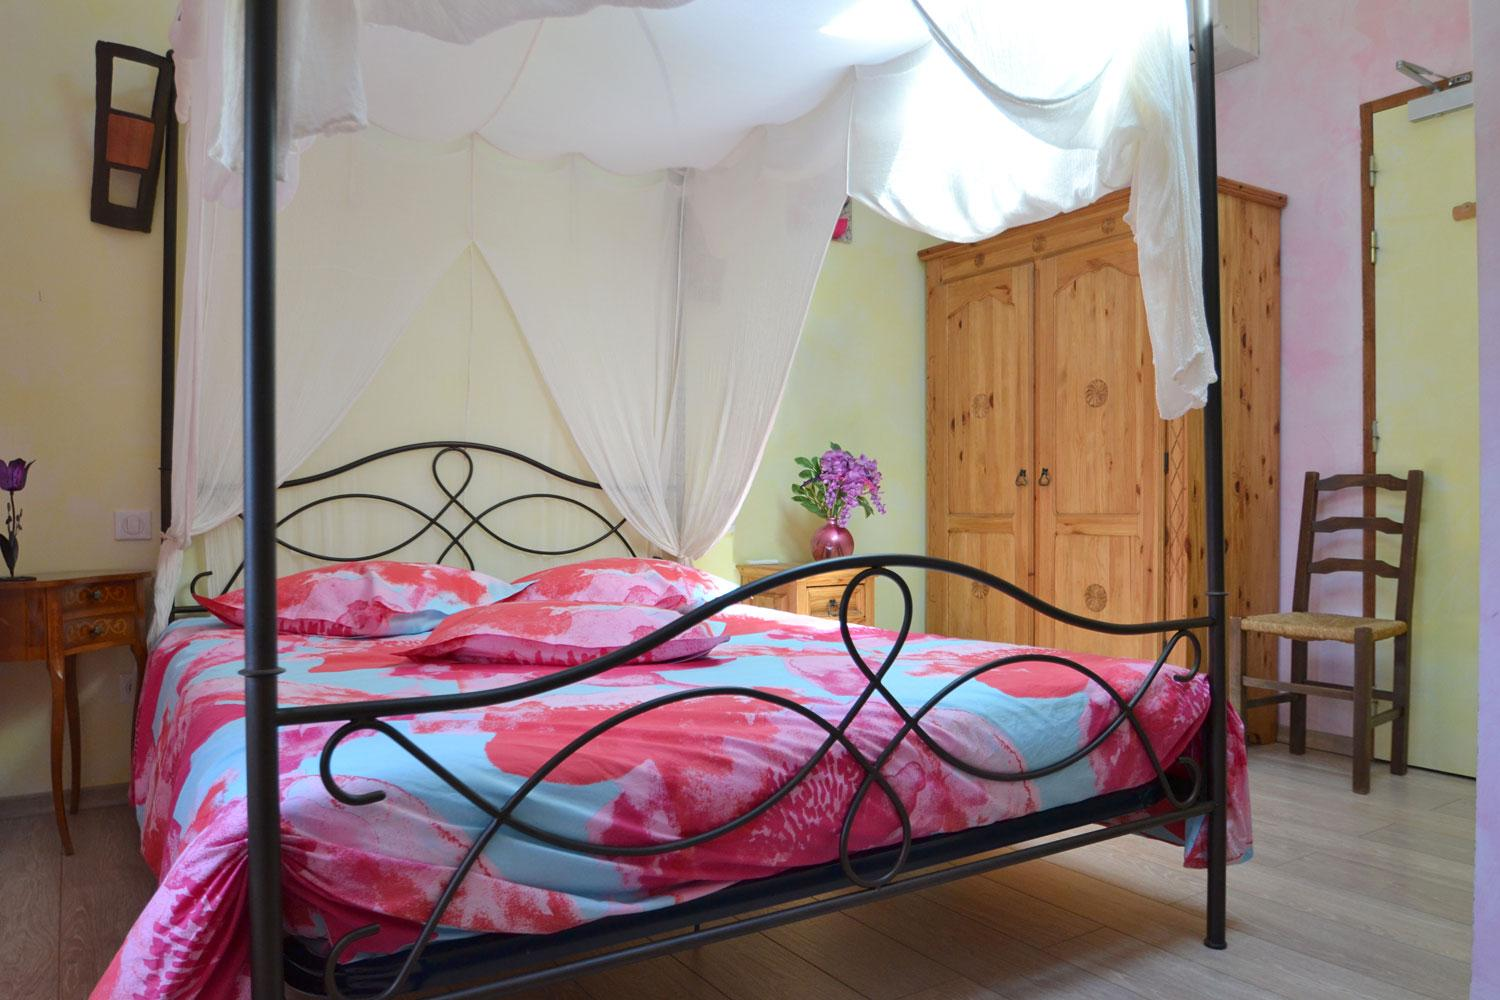 B & B with all the comforts: 160 bed quality, soft duvet, bedside and cupboard in  Mexican wooden, flat screen TV, air conditioning